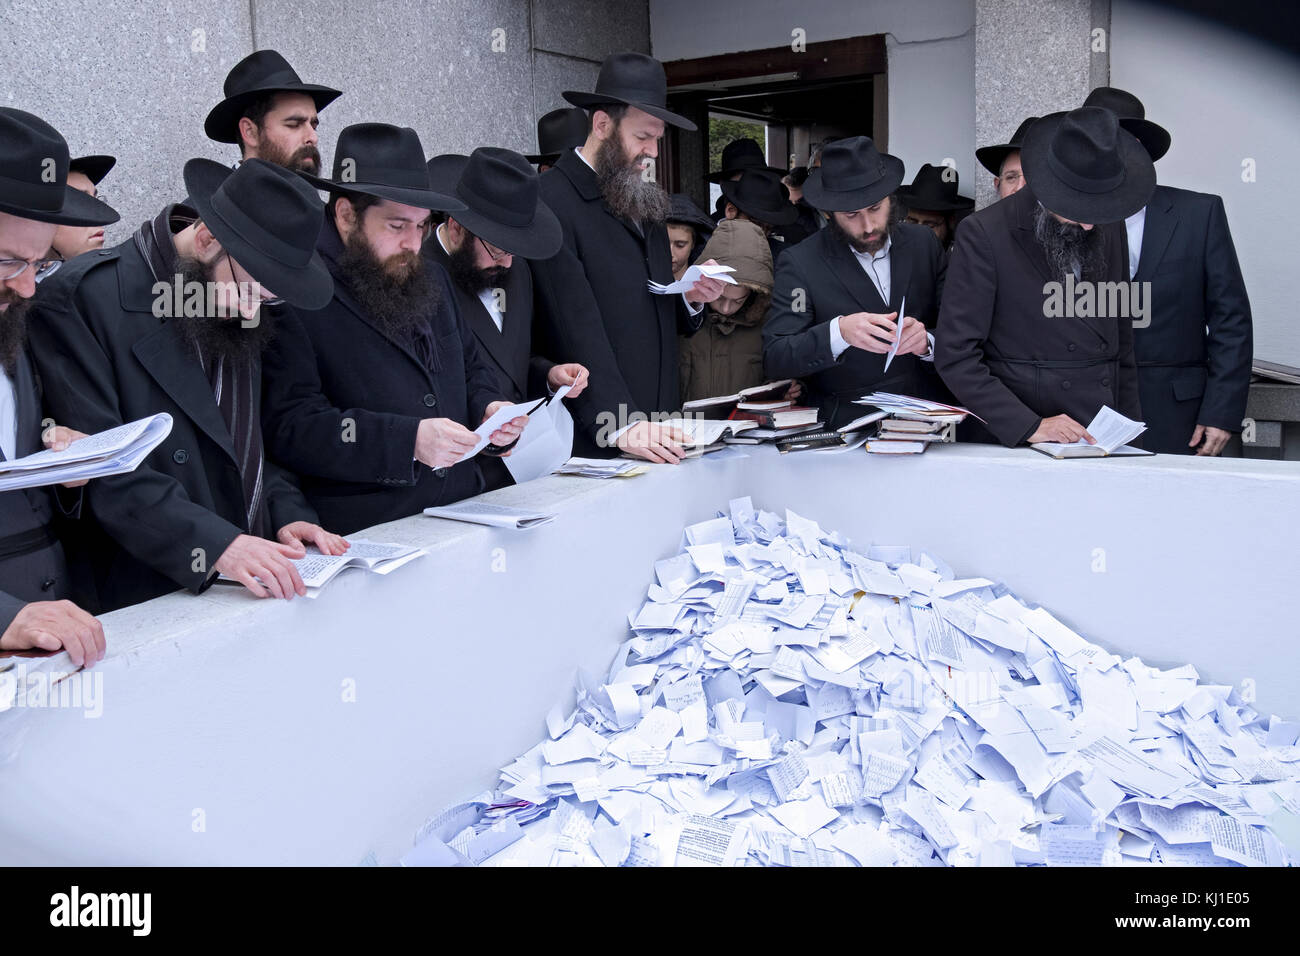 A group of religious Jewish man recite personal prayers at the site of the headstone of the Lubavitcher Rebbe, Menachem - Stock Image